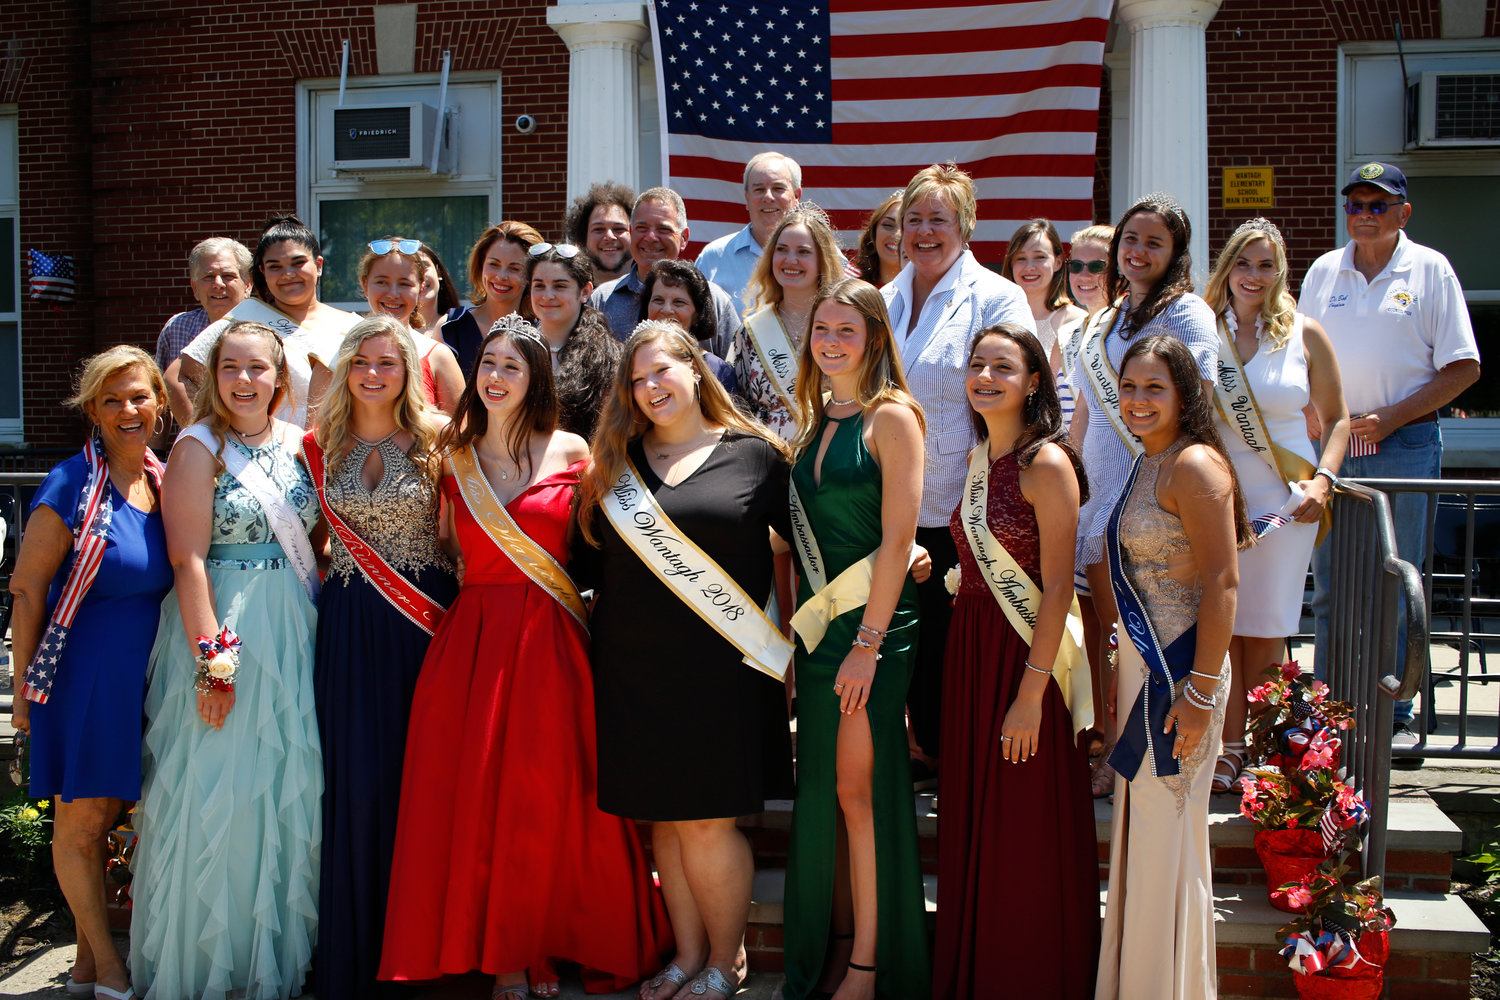 2018 Miss Wantagh Ashley Bailey surrounded by the 2019 Miss Wantagh court, former winners and pageant organizers.